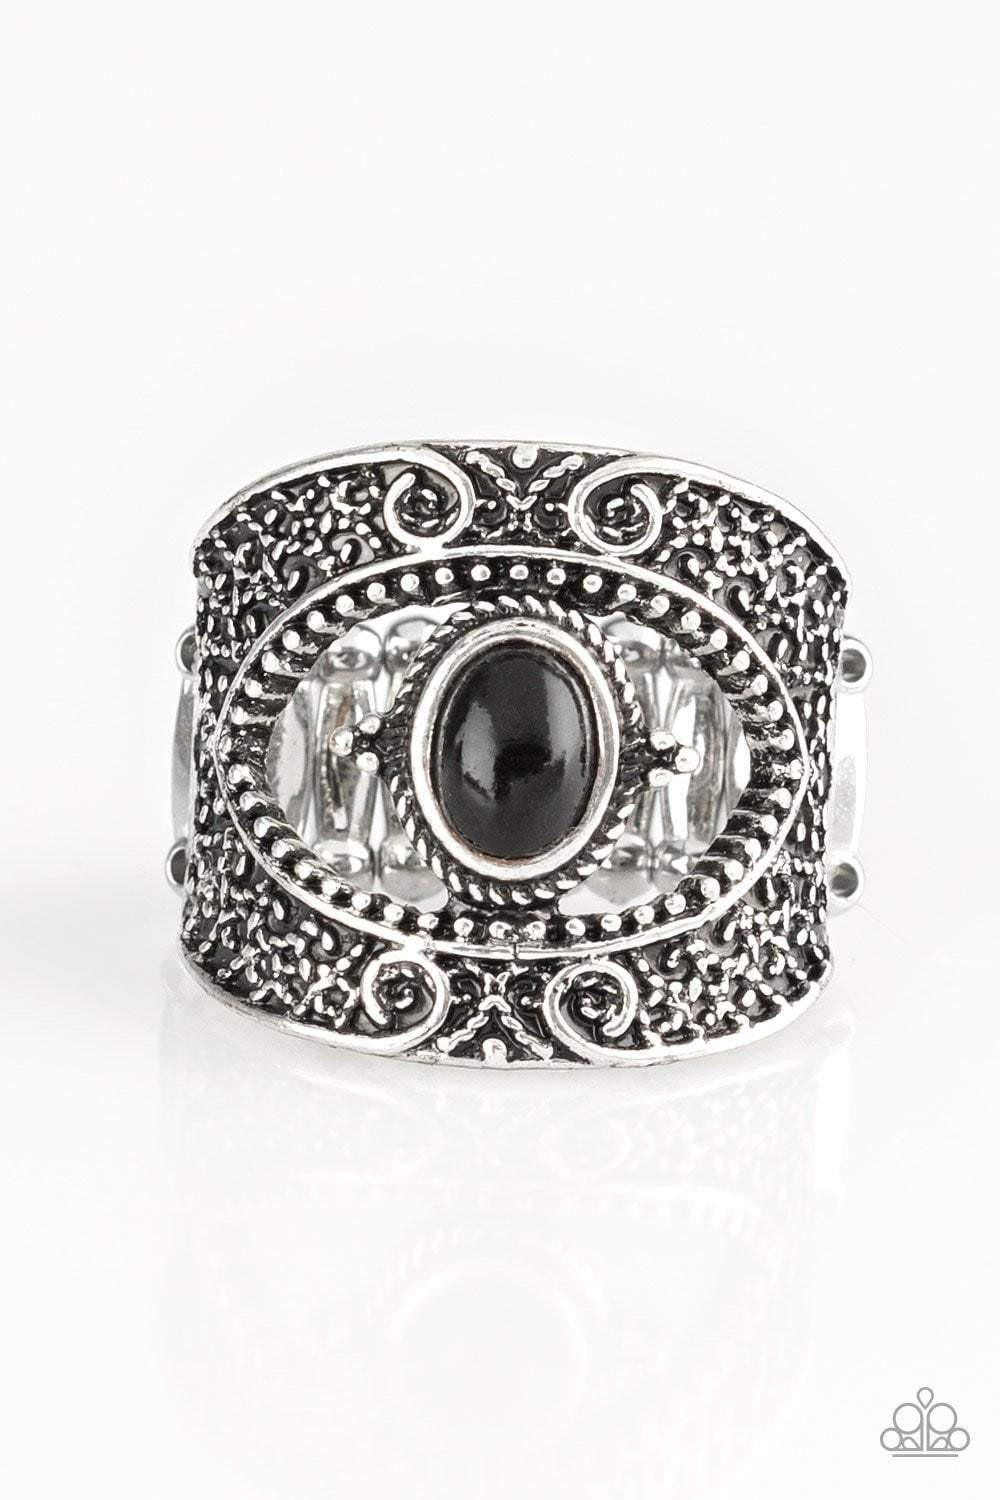 Paparazzi Rural Relic - Black Stone Embossed Filigree Silver Frame Ring - Bling It On Online